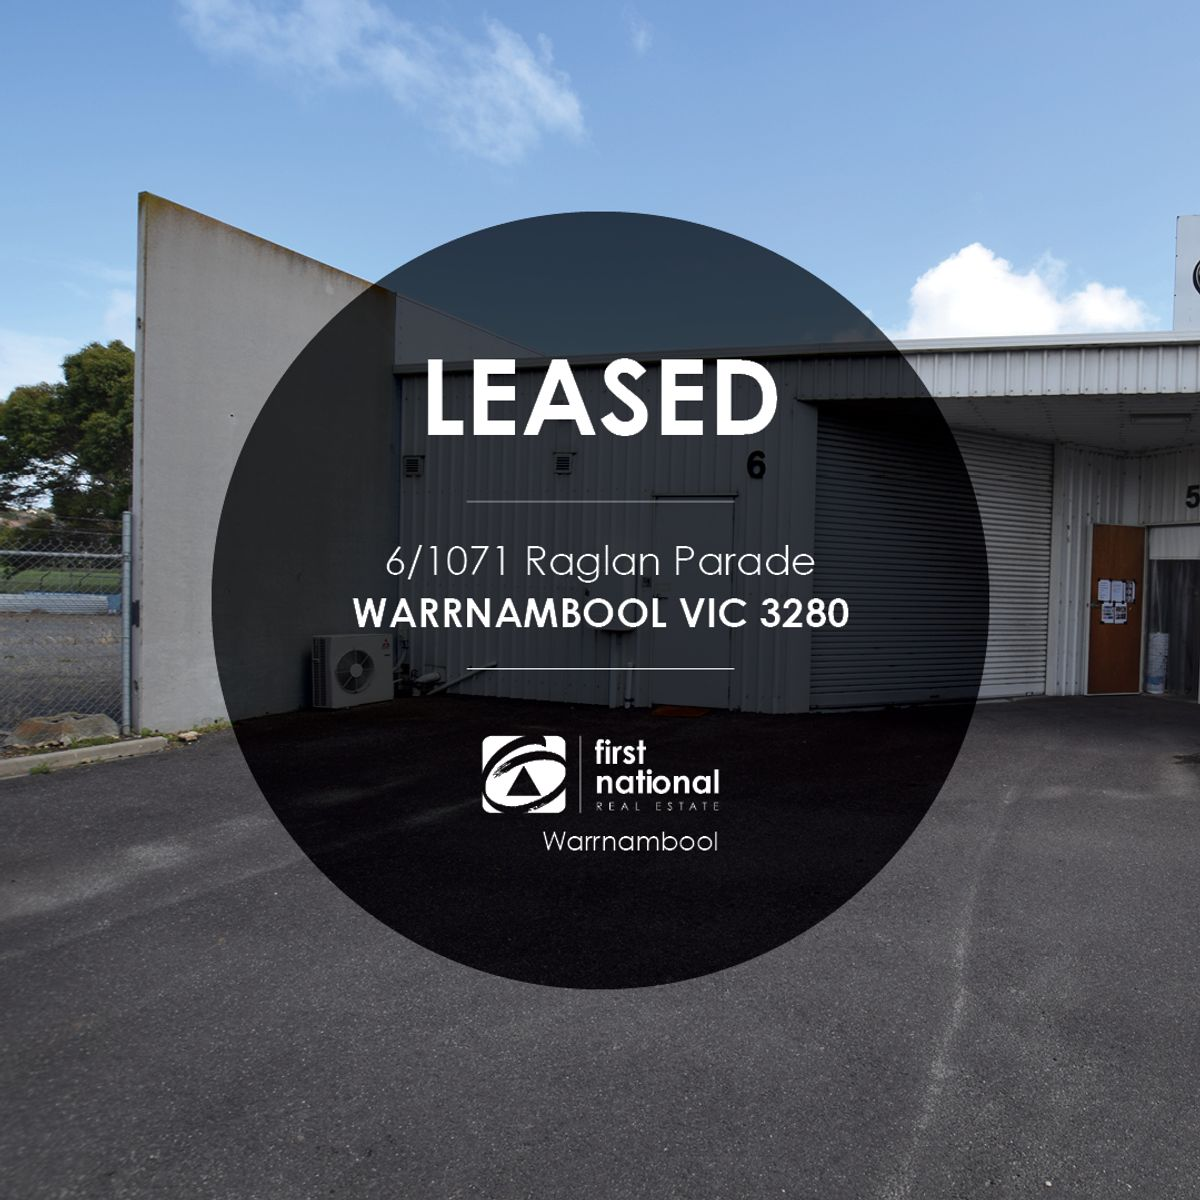 6/1071 Raglan Parade, Warrnambool, VIC 3280